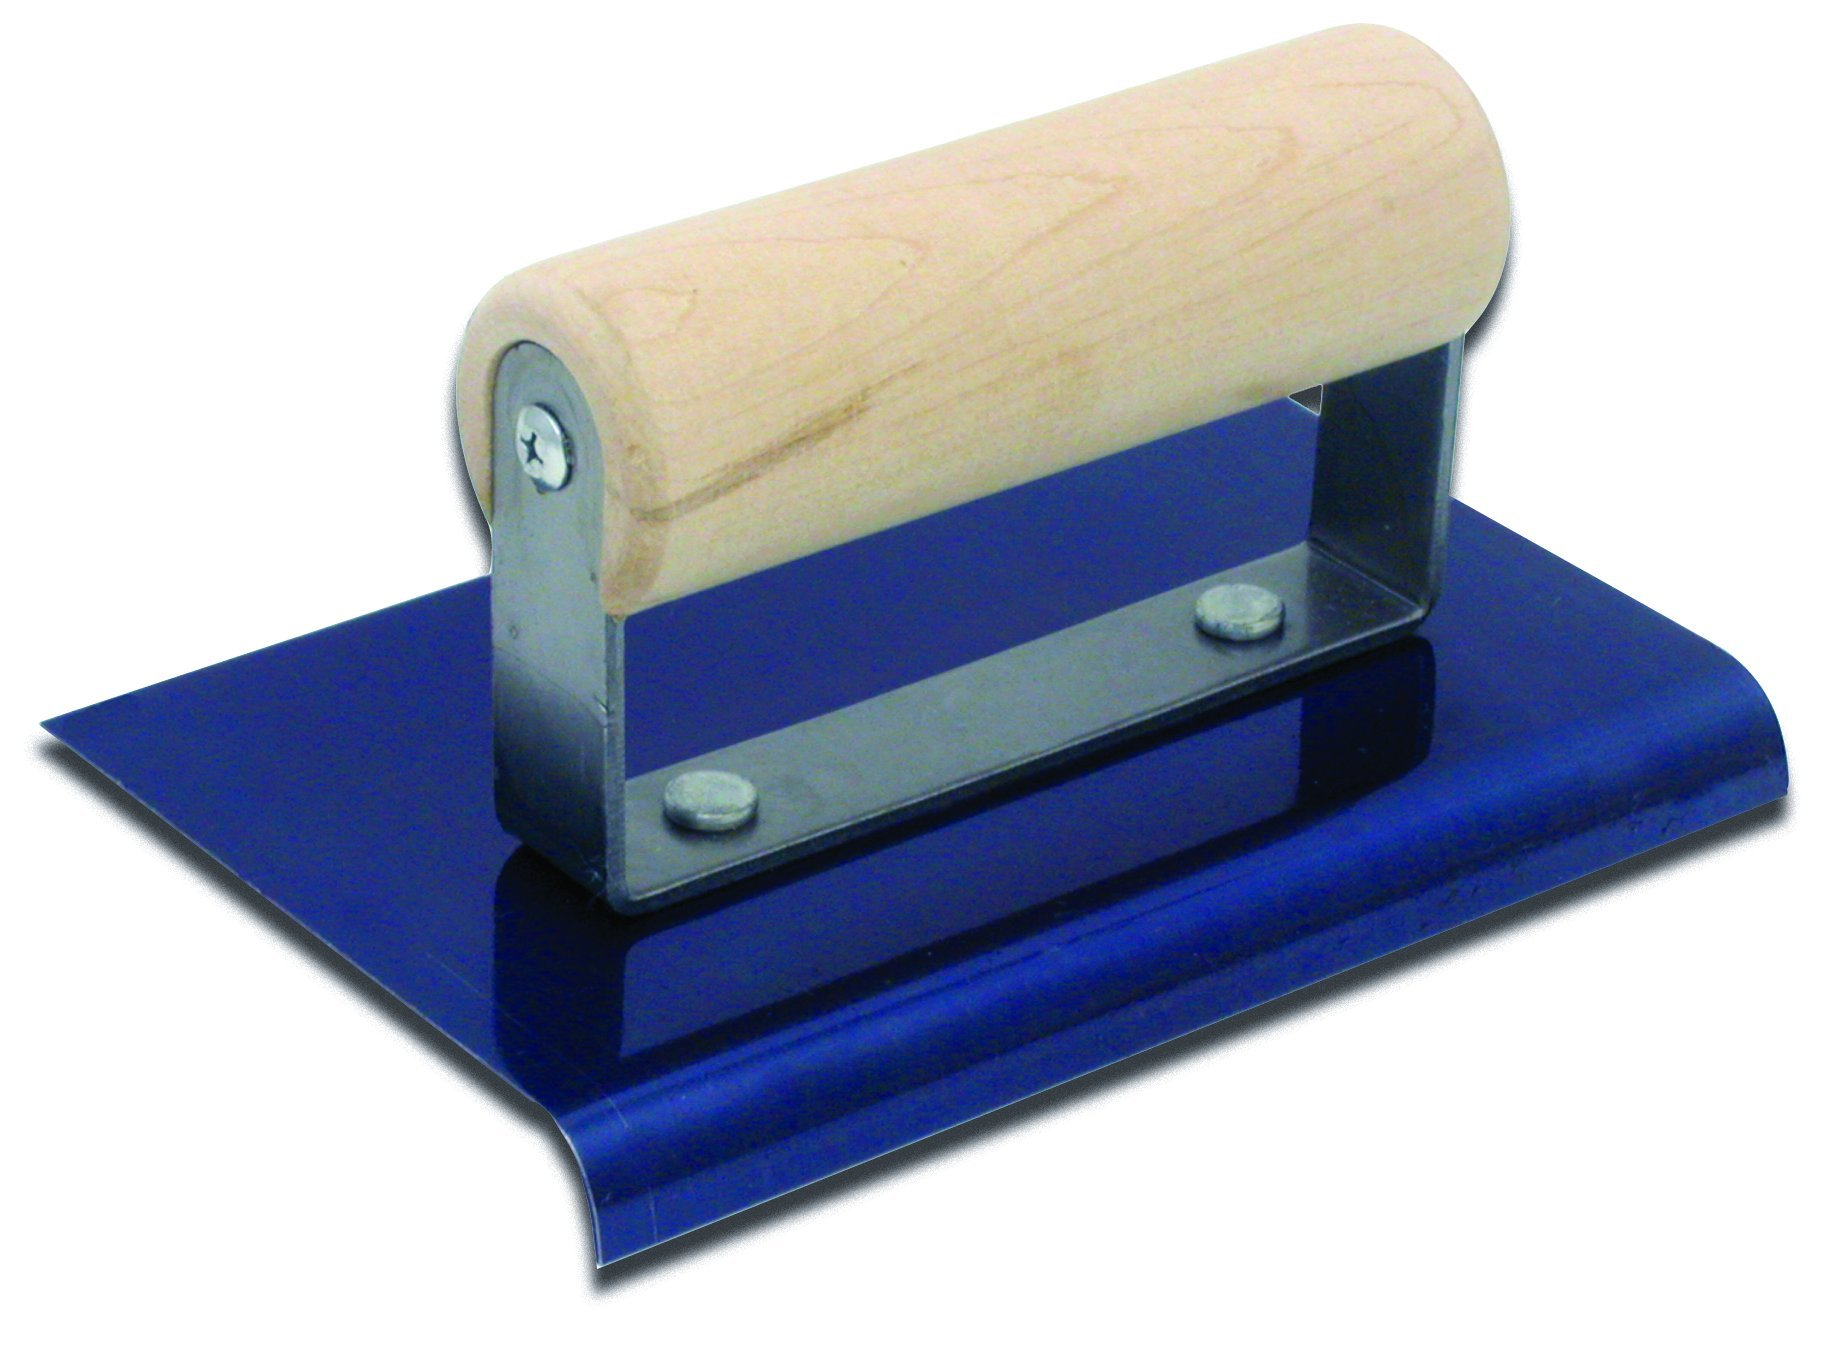 QLT By MARSHALLTOWN CE543B 6-Inch by 6-Inch Blue Steel Edger with Wood Handle